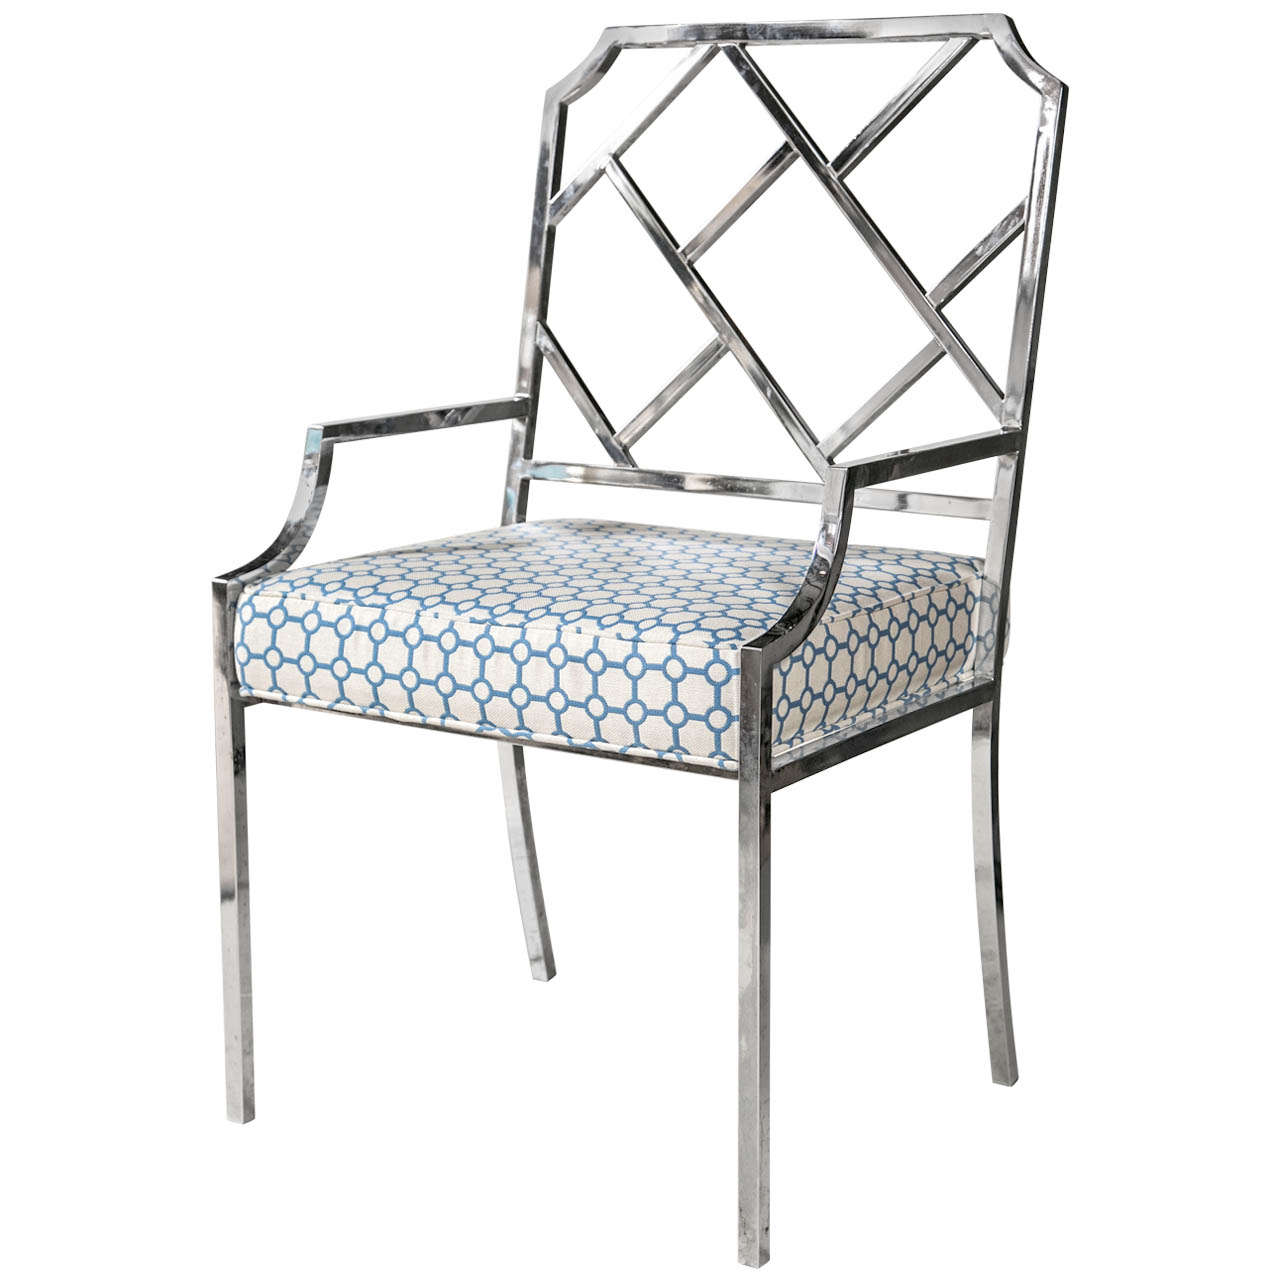 S Chrome Chippendale Chair By Milo Baughman At 1stdibs